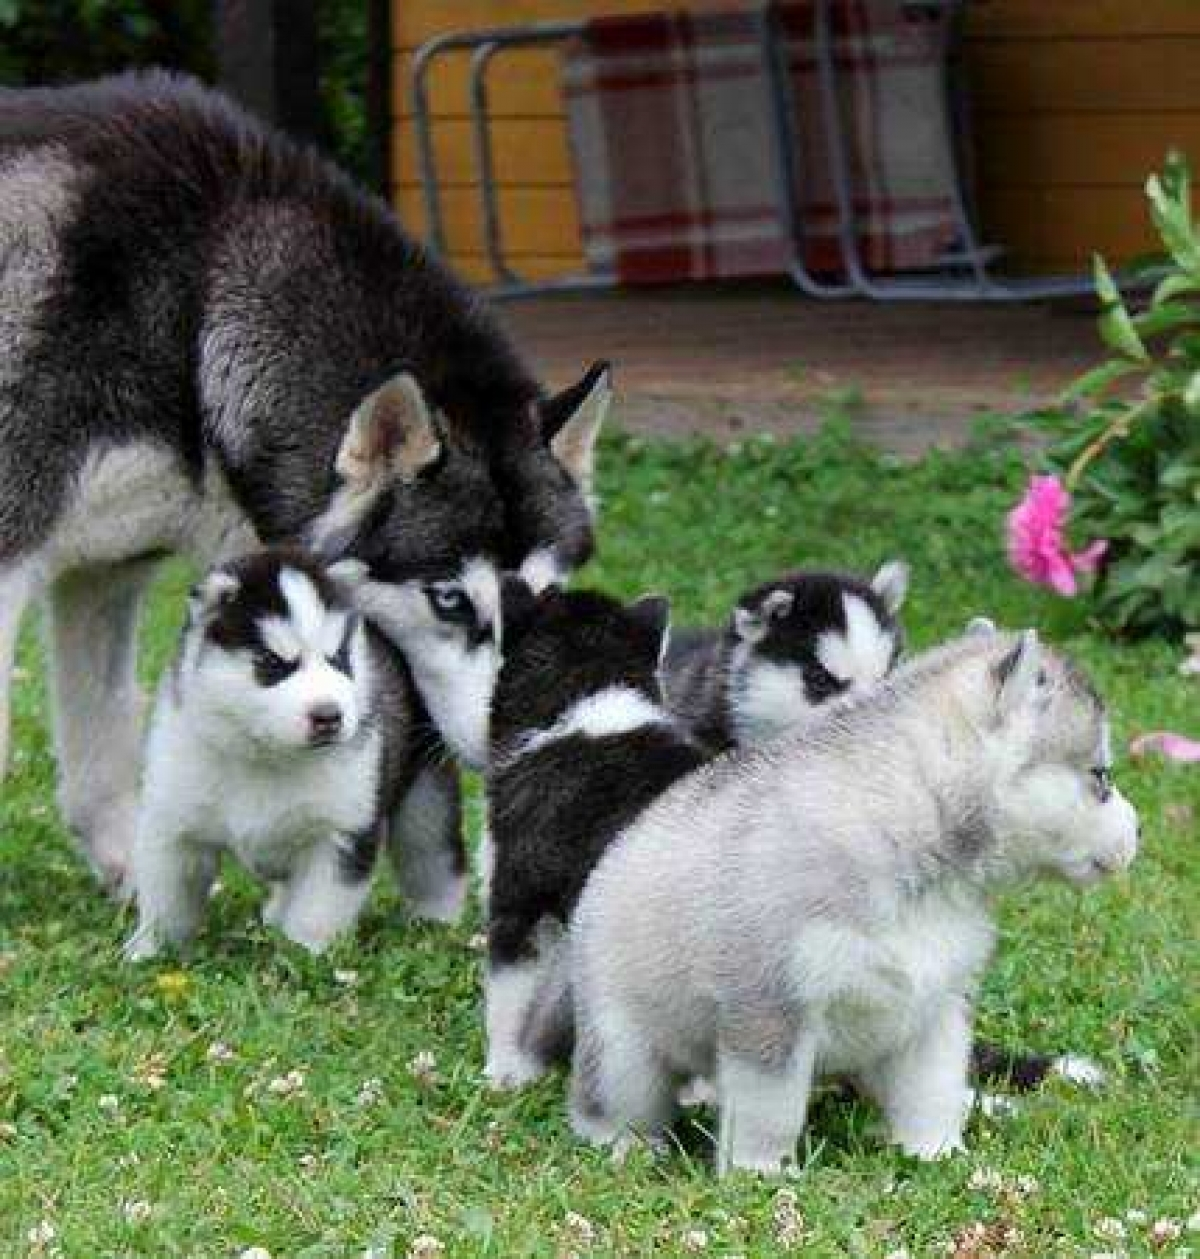 Husky puppies for adoption in california - Female And Male Siberian Husky Puppies For Adoption